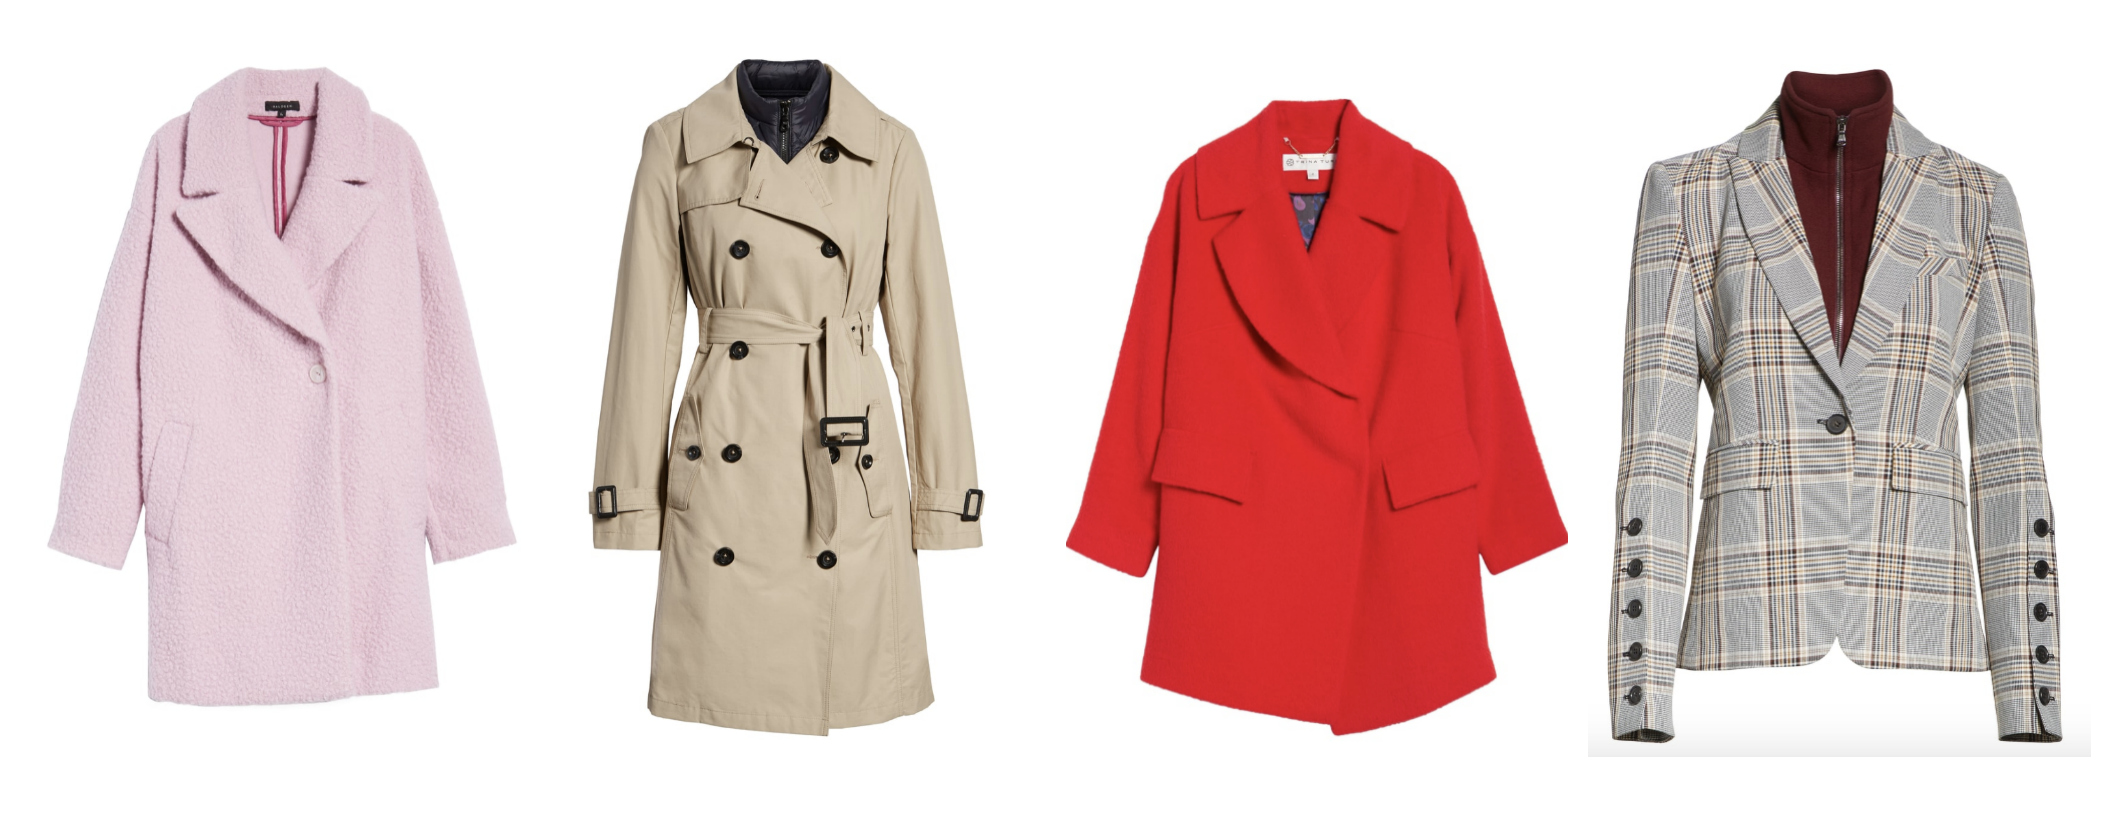 nordstrom anniversary sale picks coats 2018